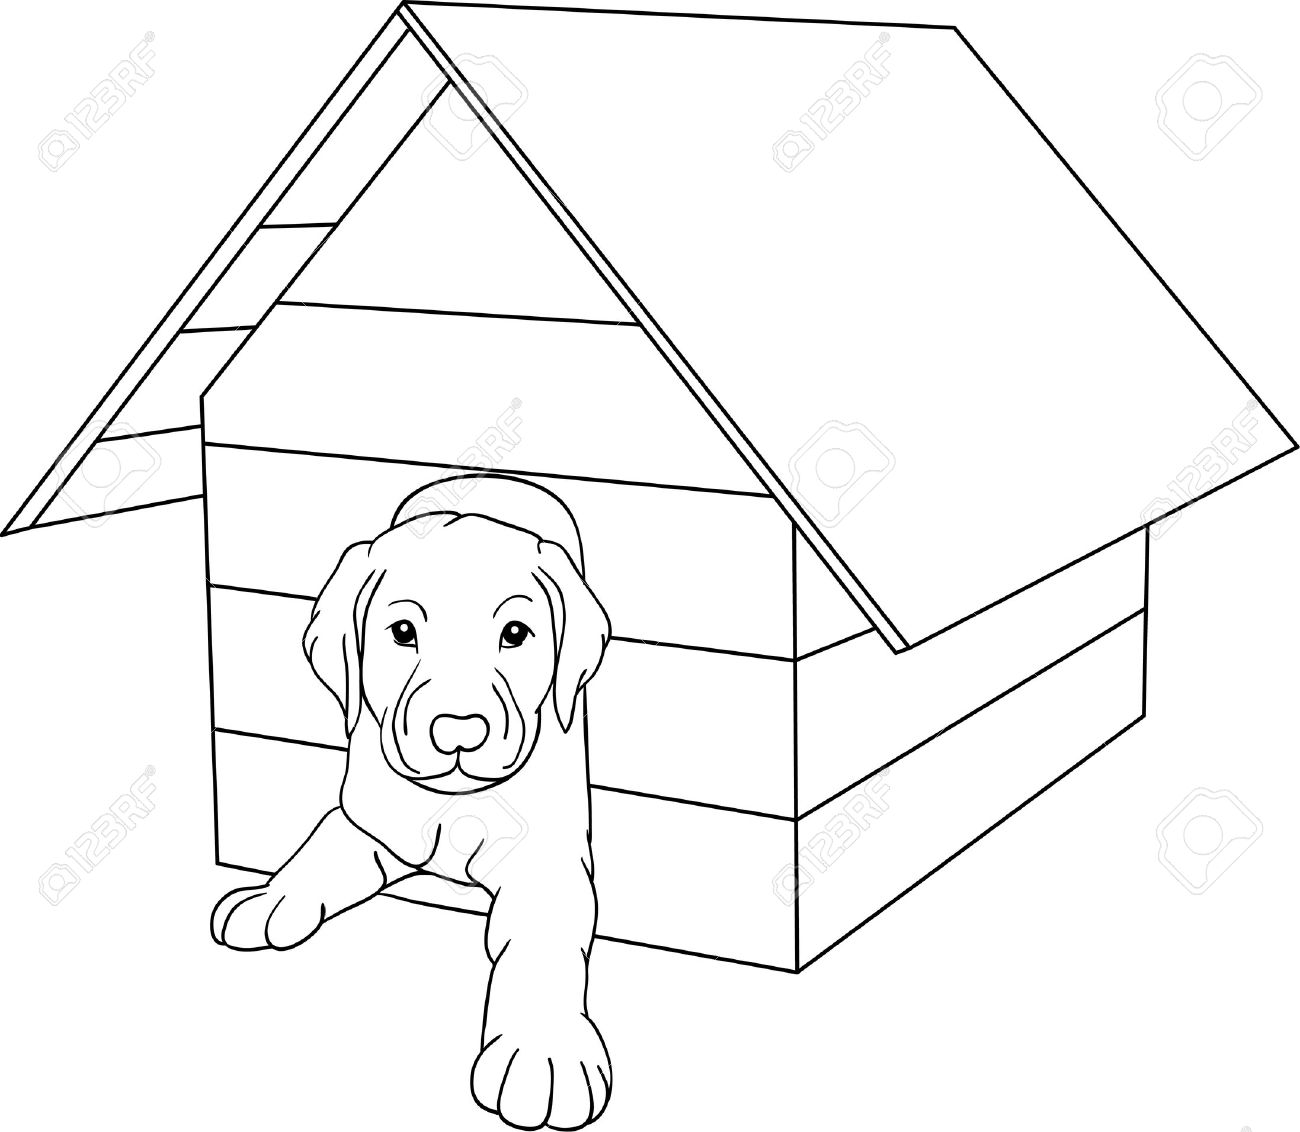 House outline picture - House Dog Isolated On Background Stock Vector 6596682